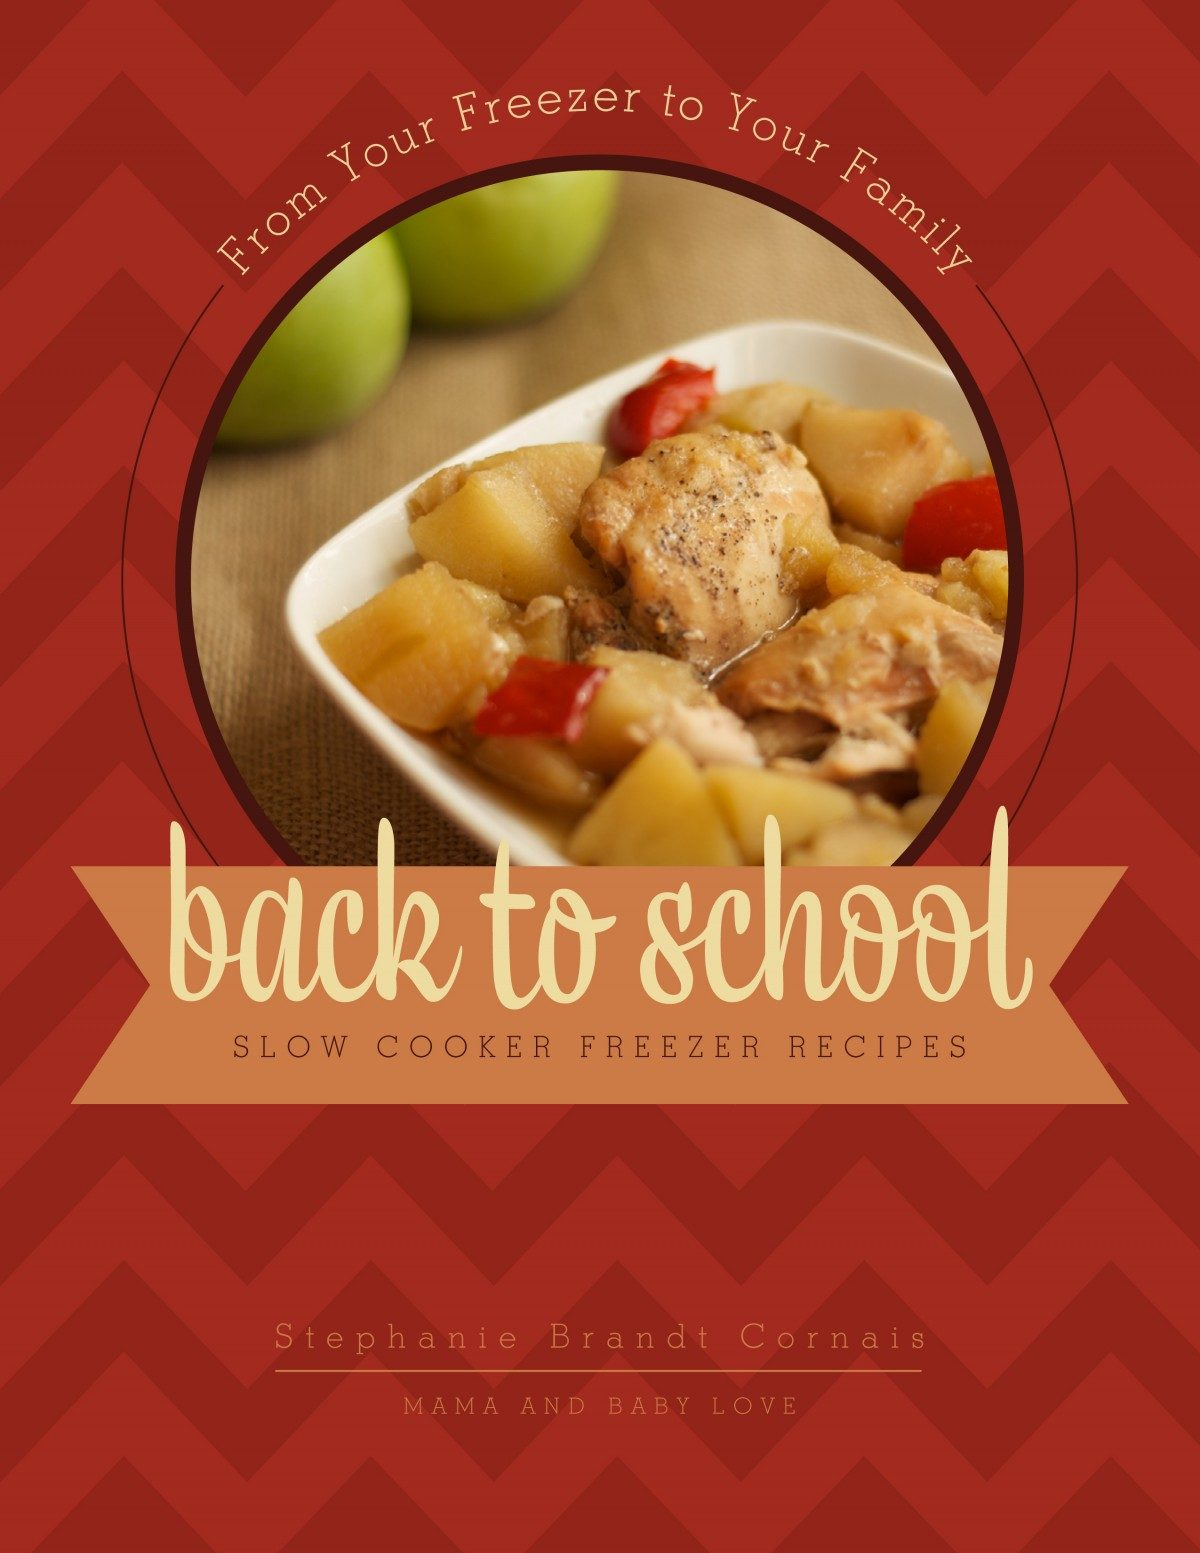 back-to-school-cookbook